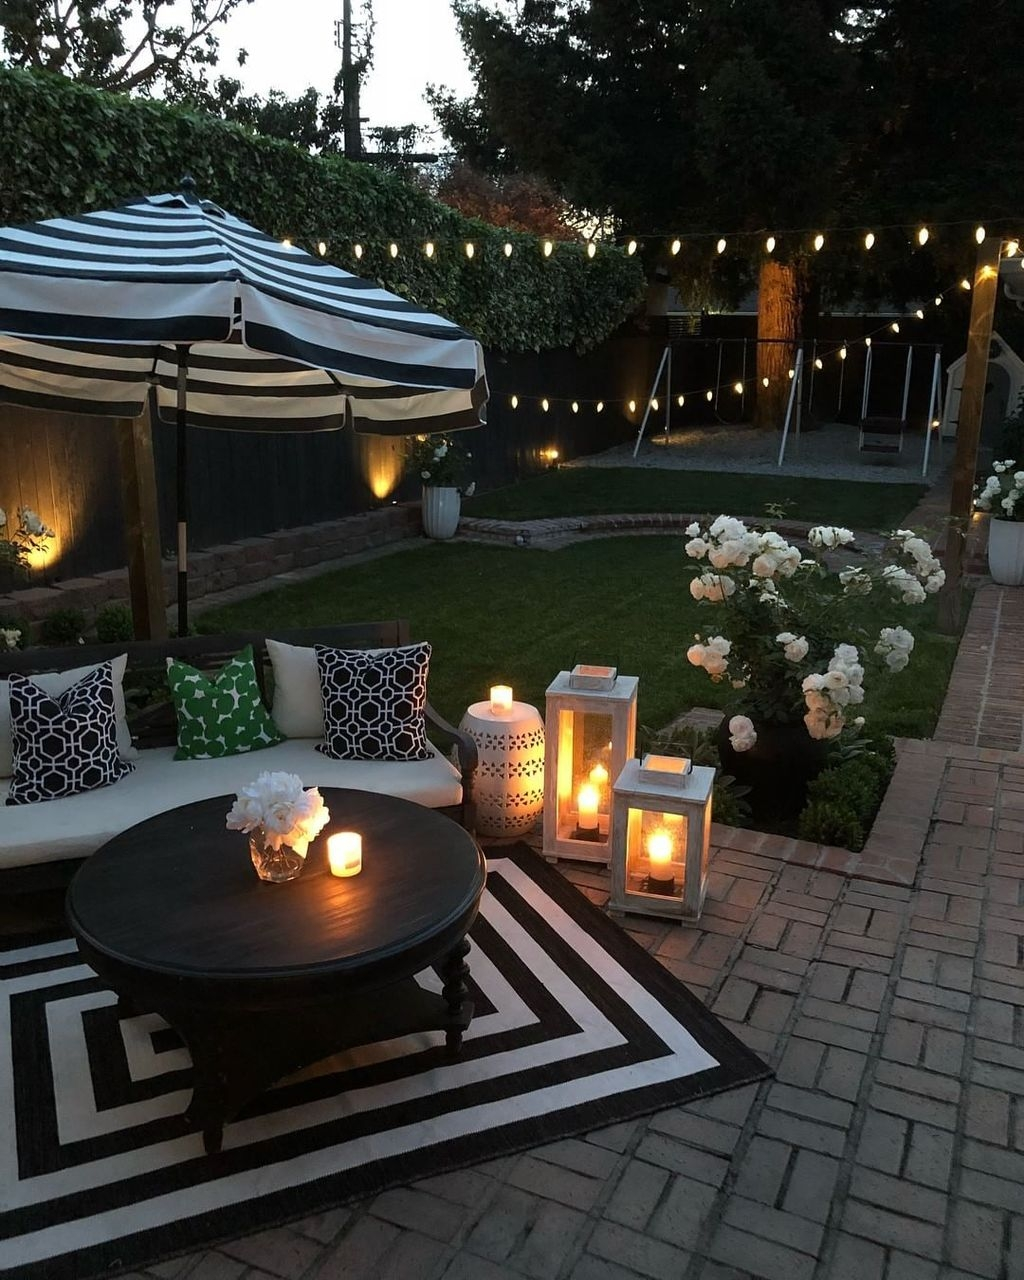 20+ Attractive Small Backyard Design Ideas On A Budget ... on Small Outdoor Patio Ideas id=90184